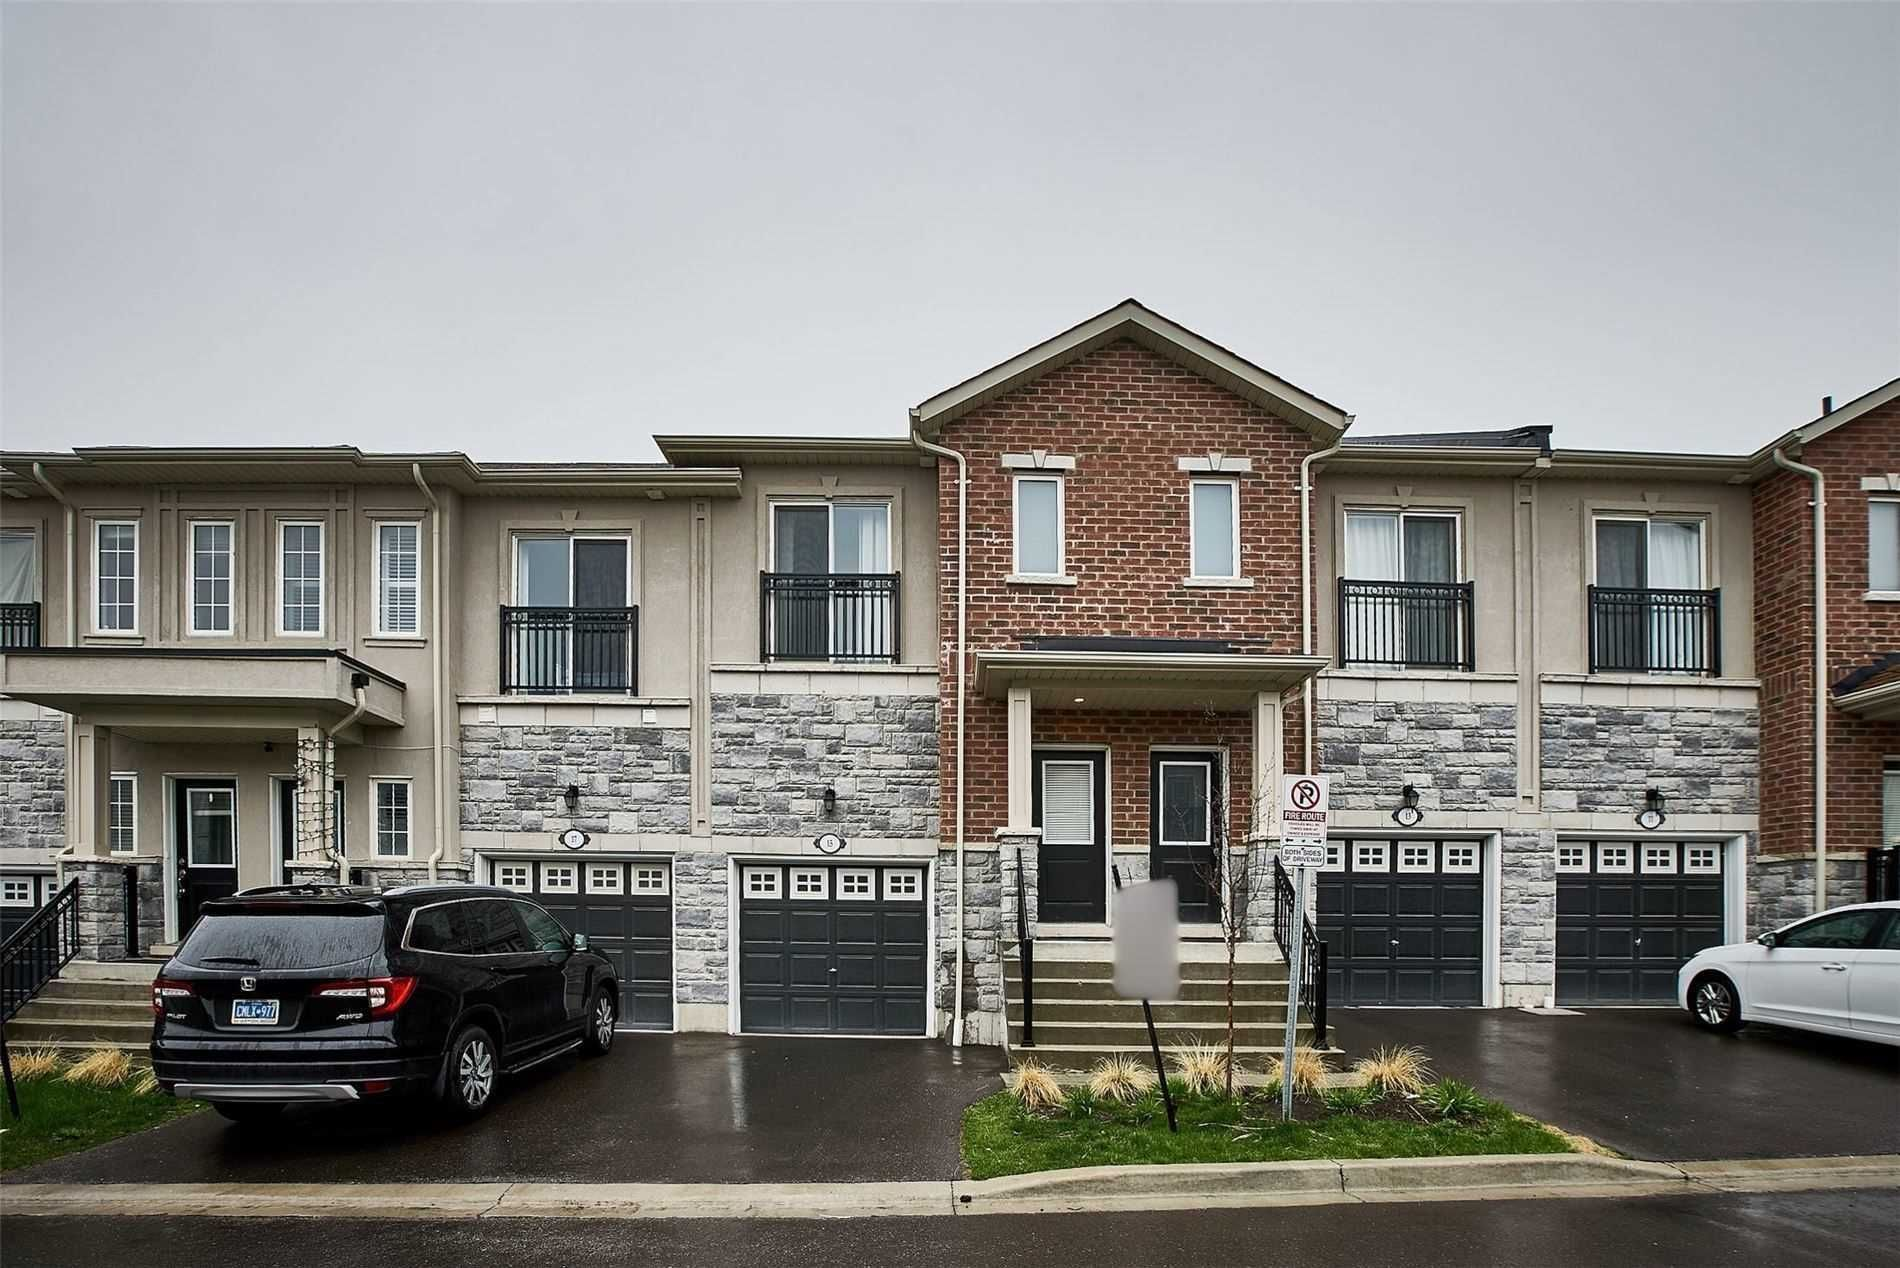 Main Photo: 15 Prospect Way in Whitby: Pringle Creek House (2-Storey) for sale : MLS®# E5262069